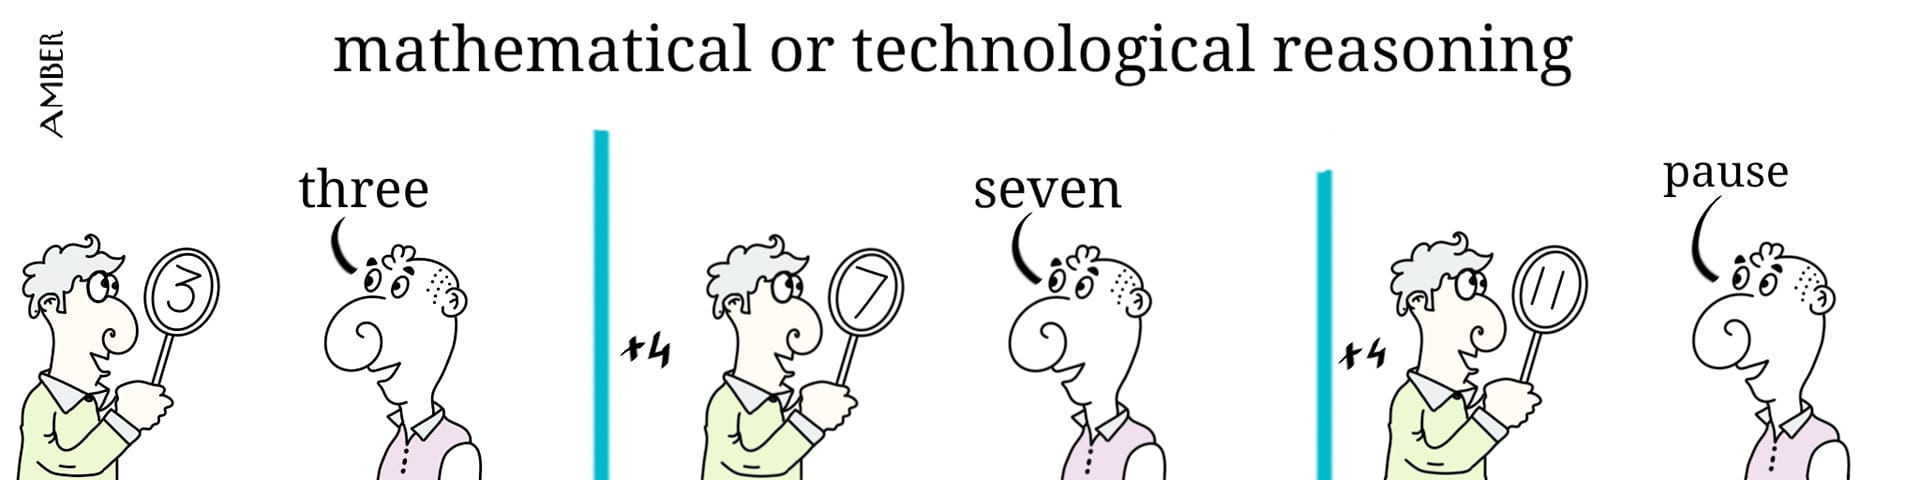 Match or Tech Reasoning